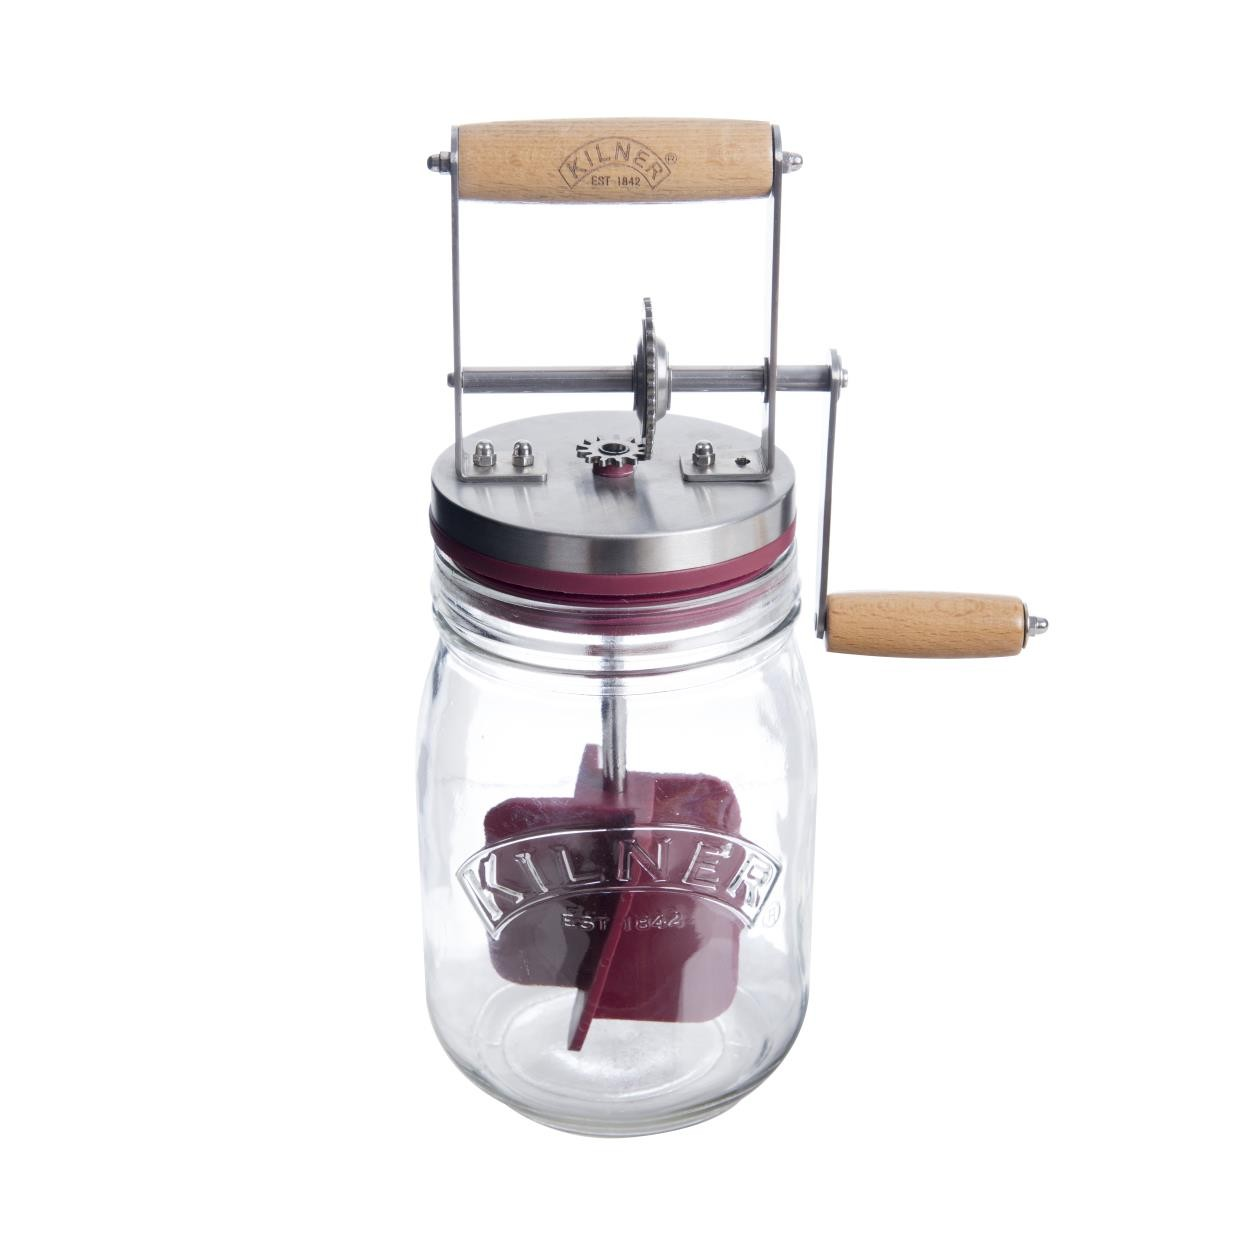 Kilner Butter Churner Gift